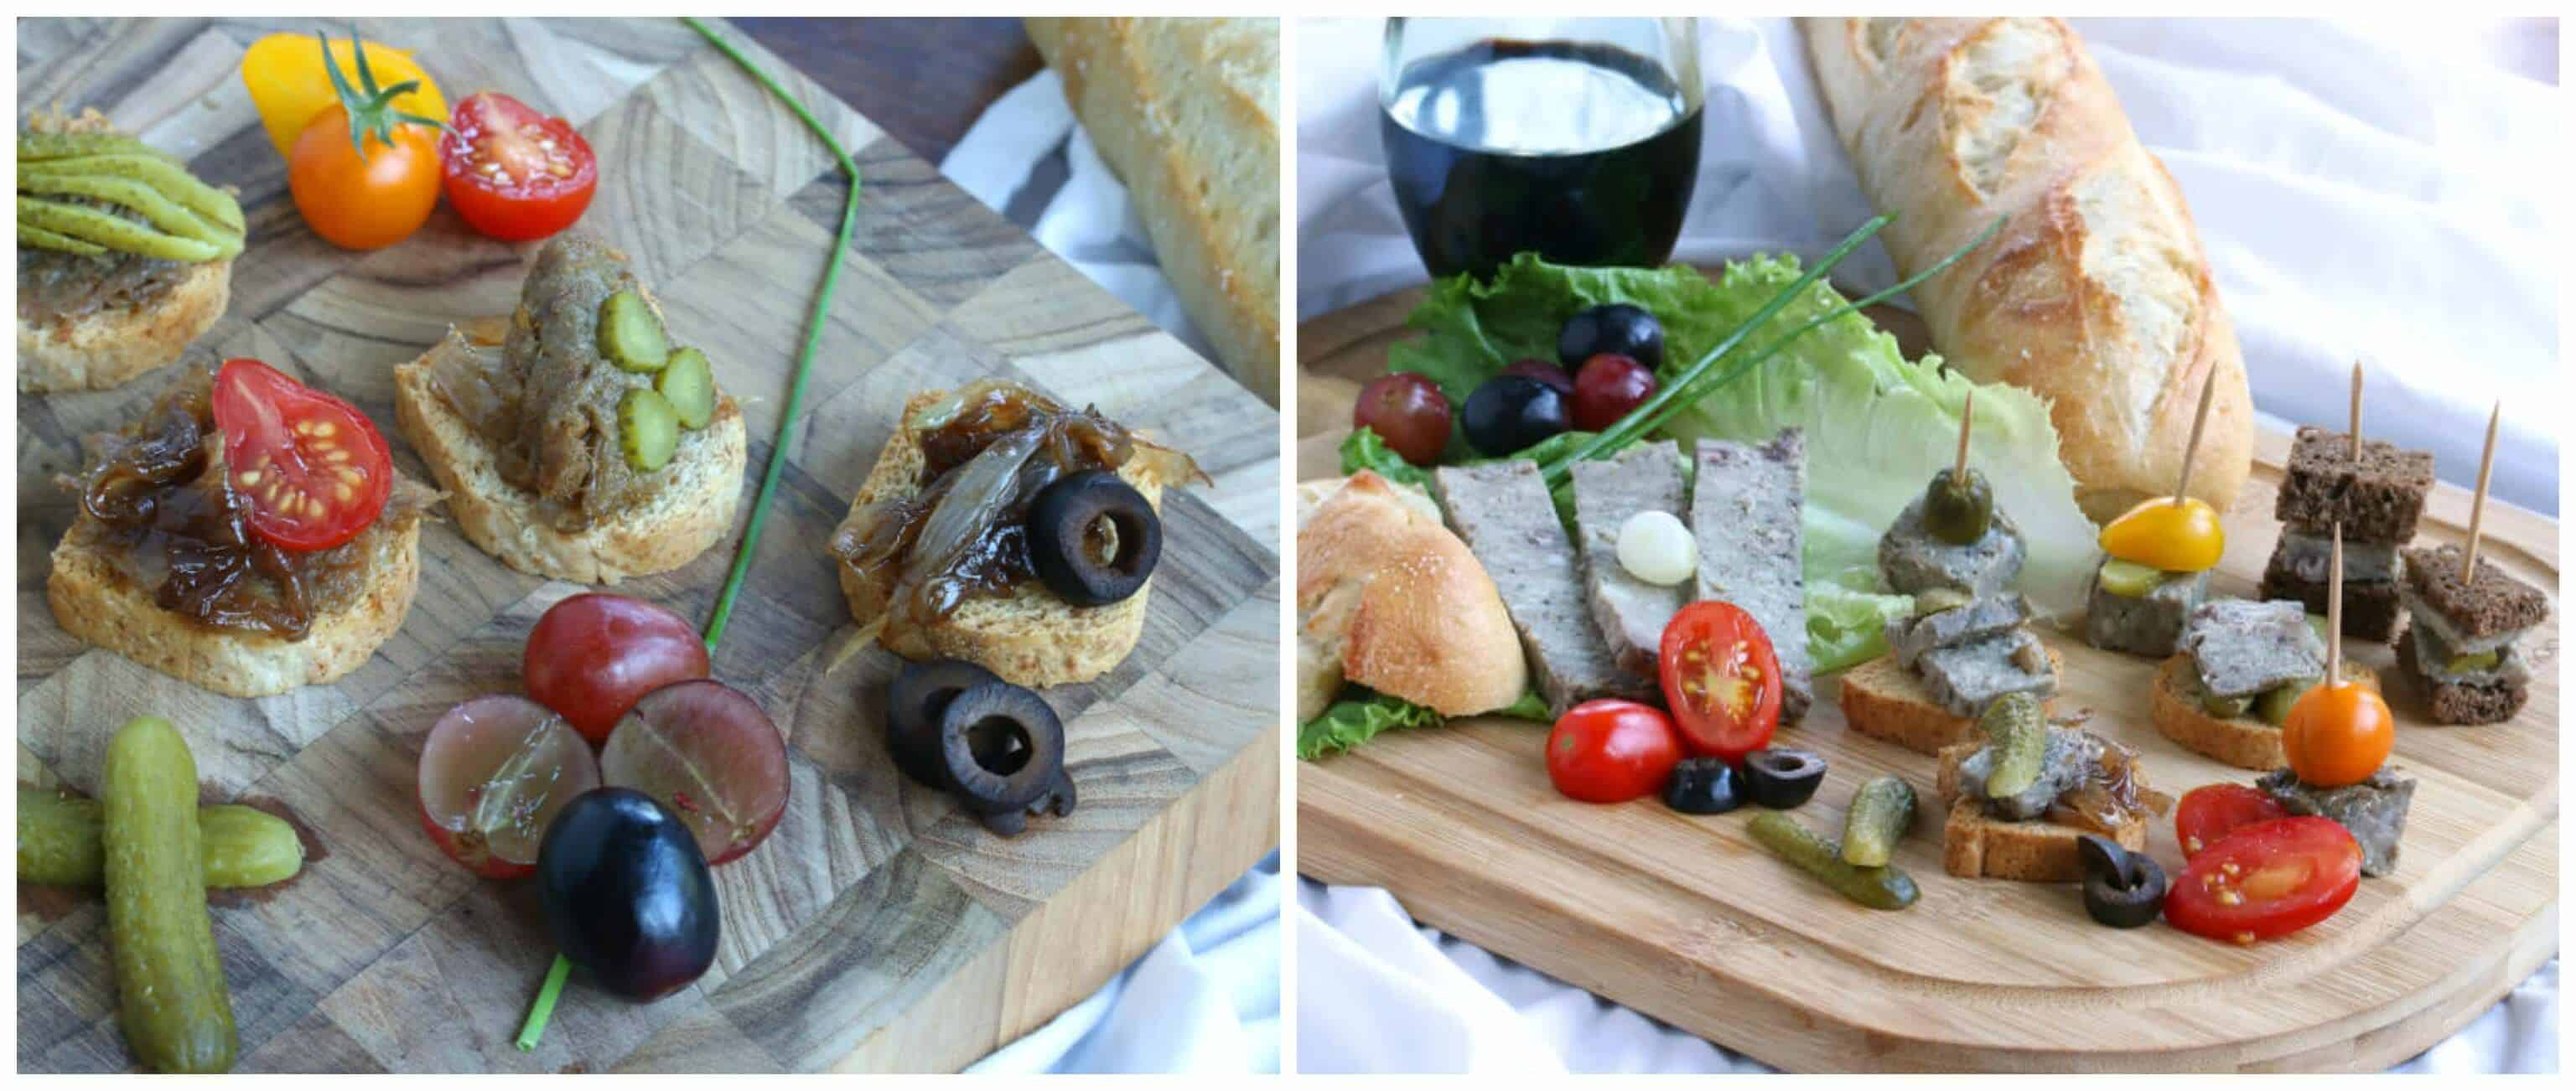 french entertaining country style with rillette and pate